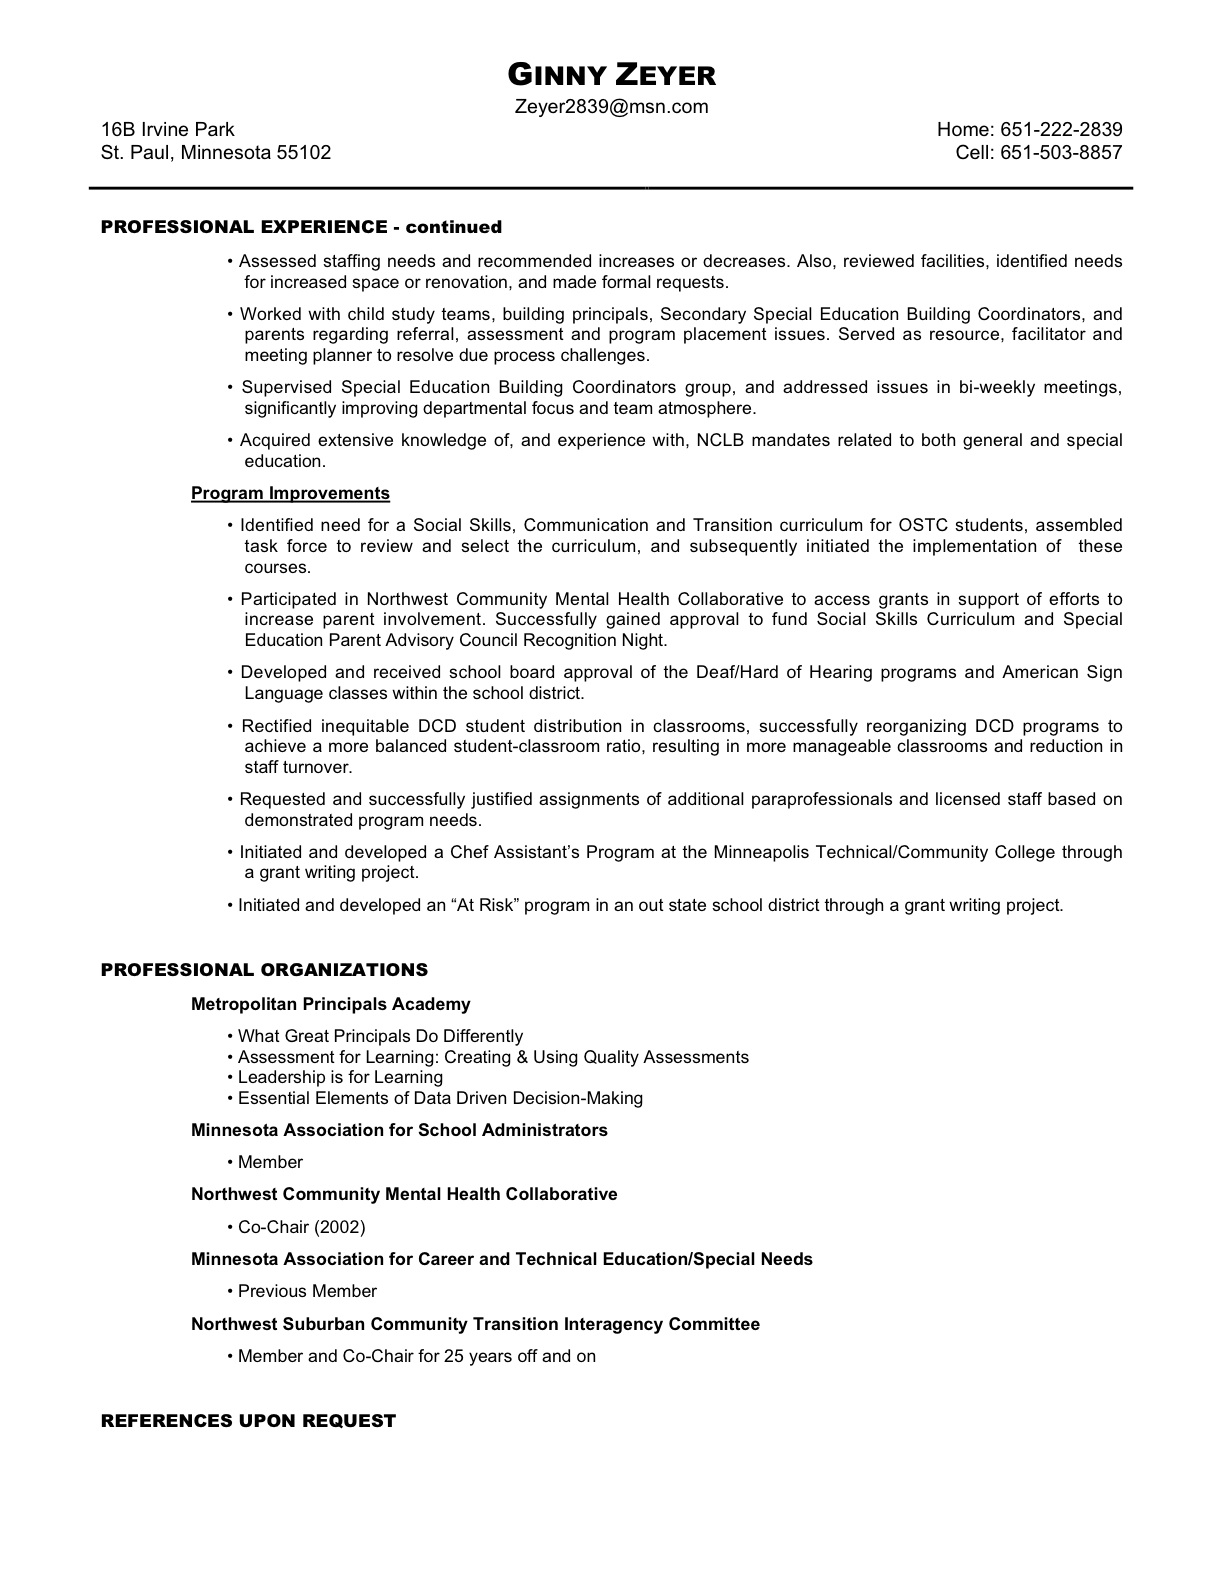 skills and qualification in resume